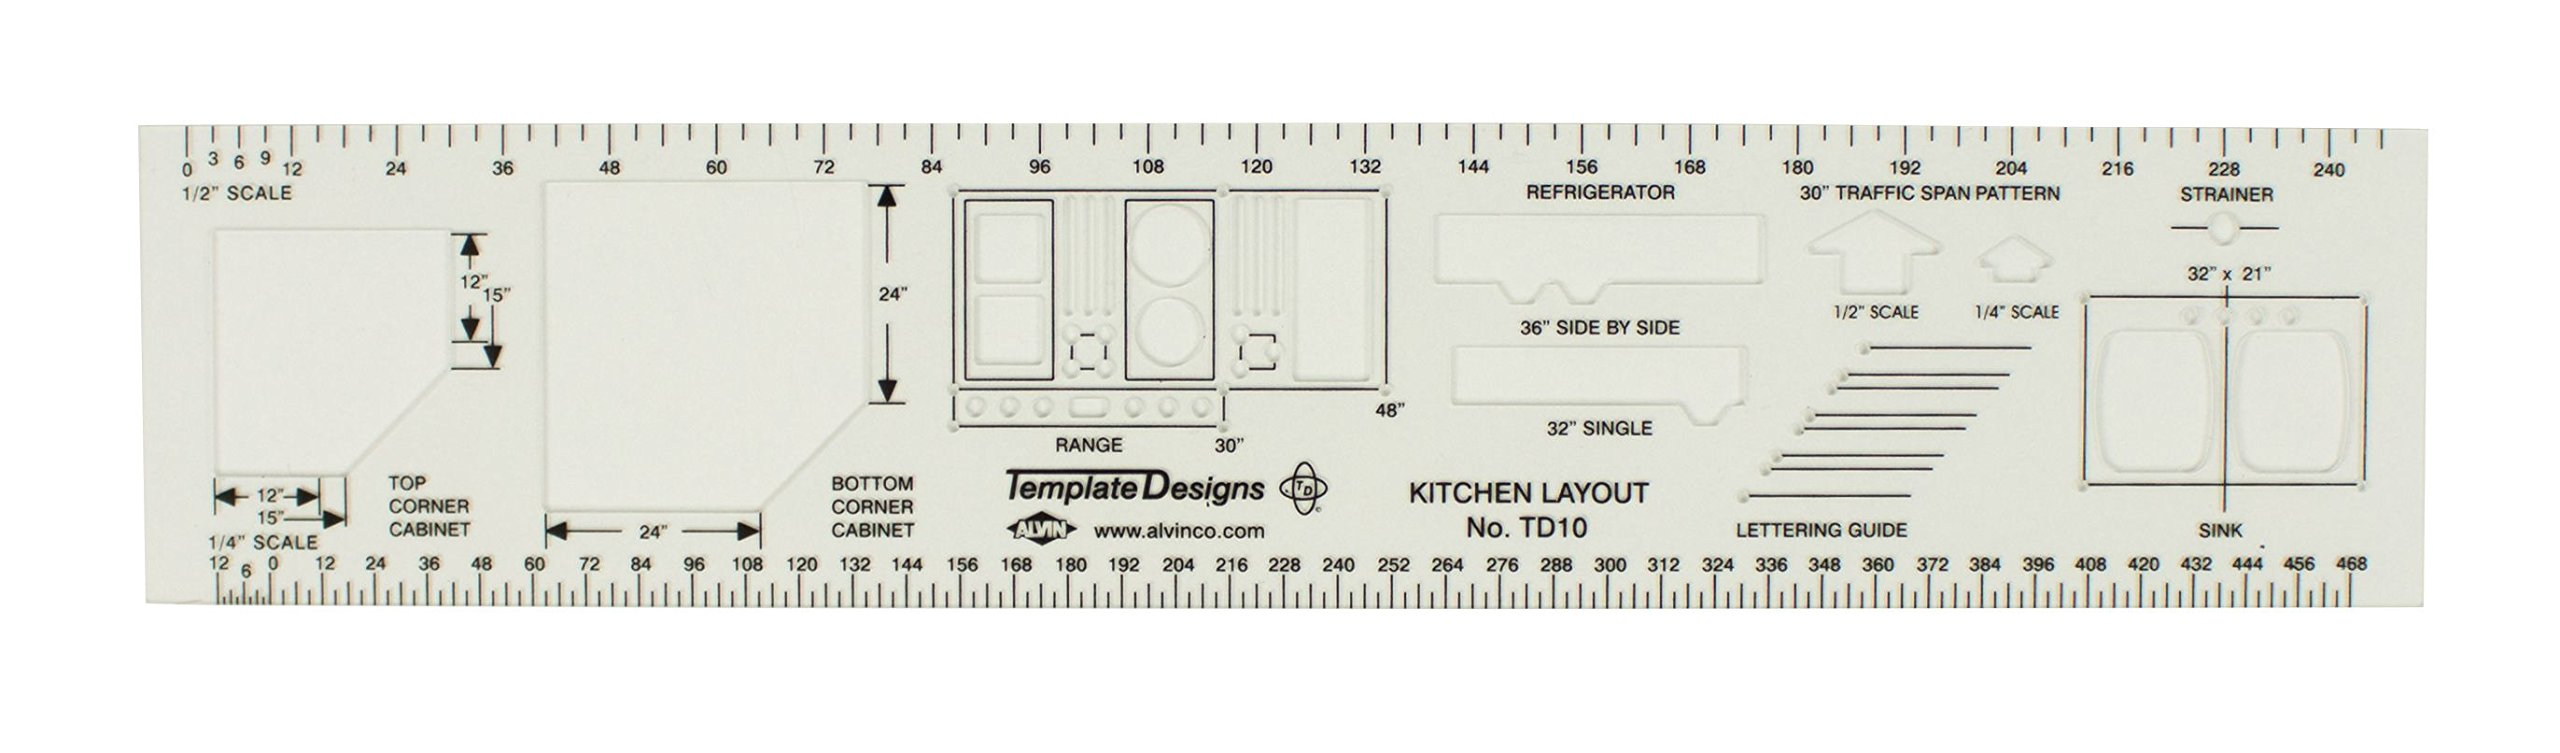 Alvin Kitchen Layout Template by Alvin & Company, Inc.